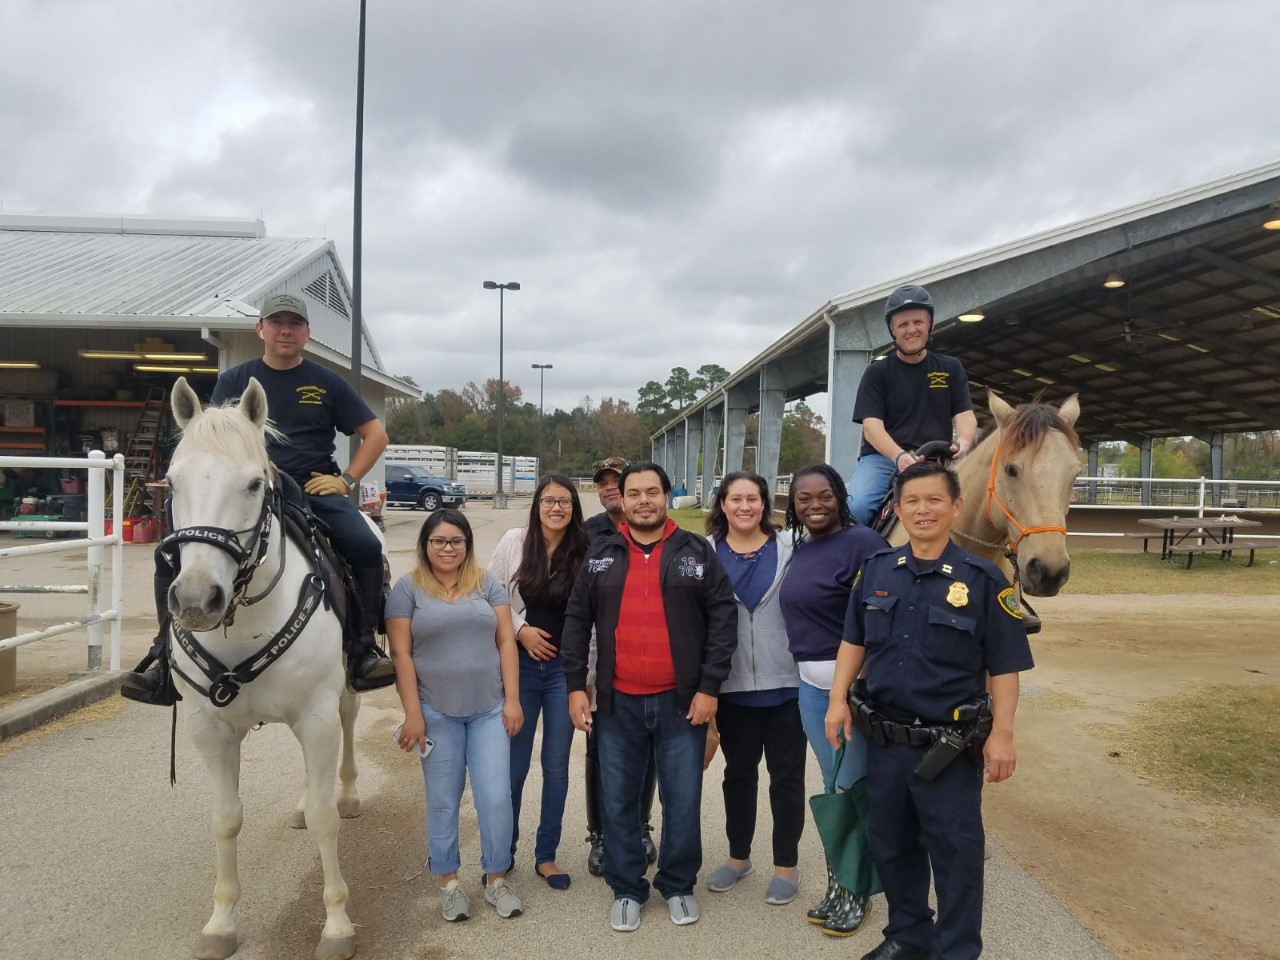 Students with police horses